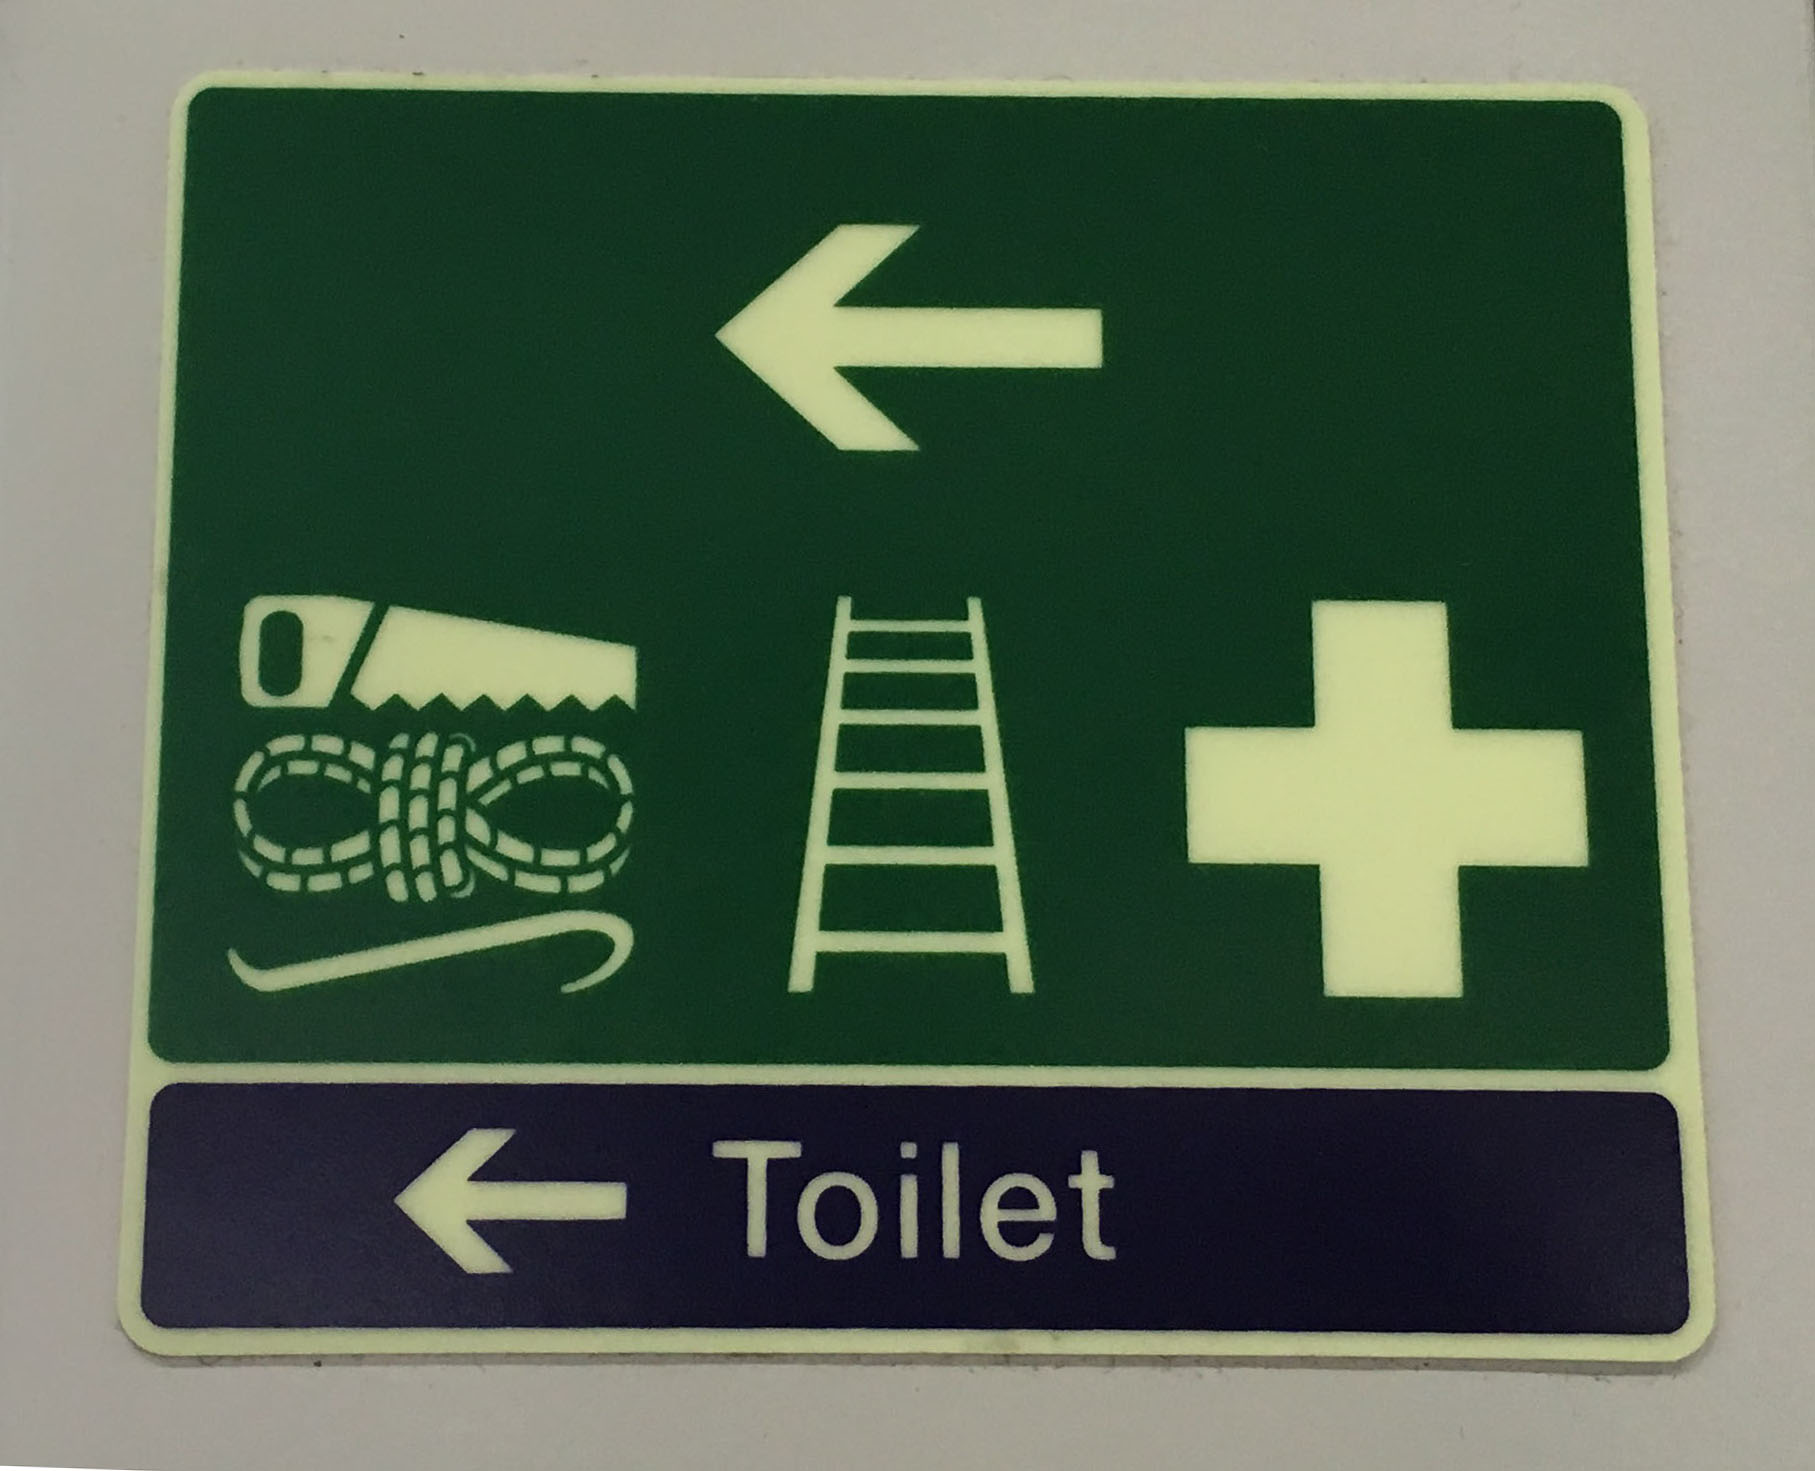 Colonel Mustard killed the first aid worker with the saw, rope, and crowbar in the train toilet (Heathrow Express, London)